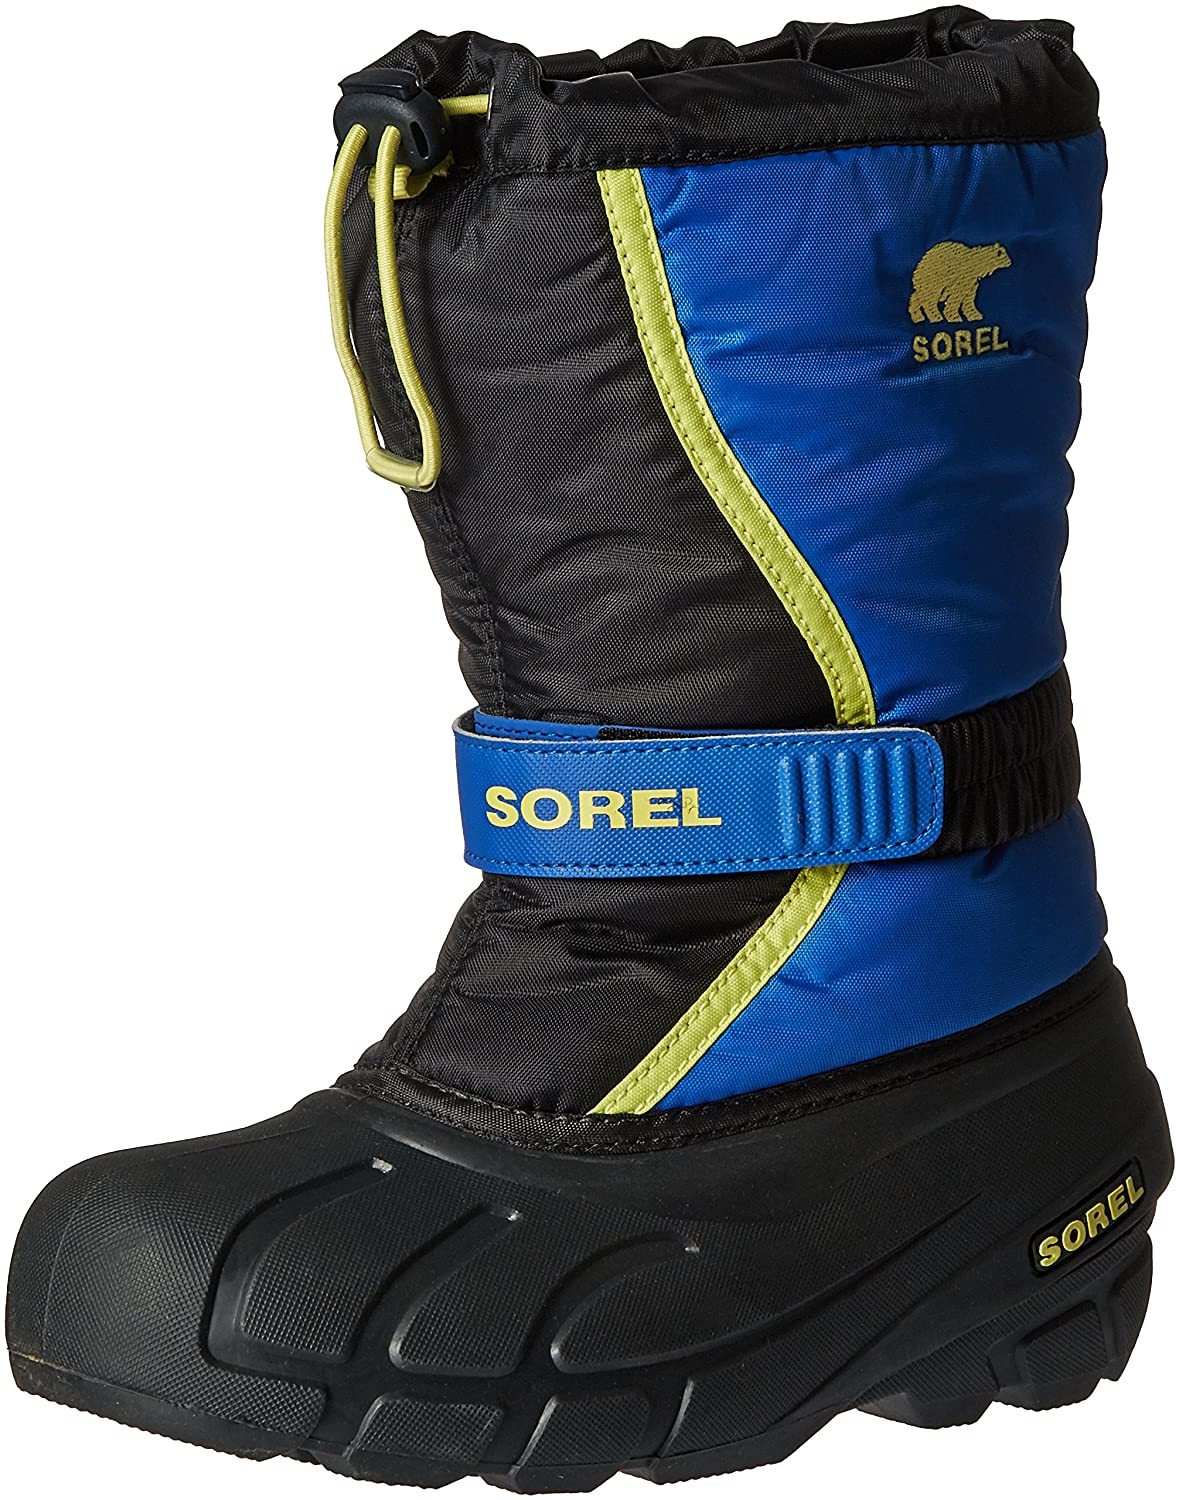 Sorel Youth Flurry Botas de Nieve Unisex Niños